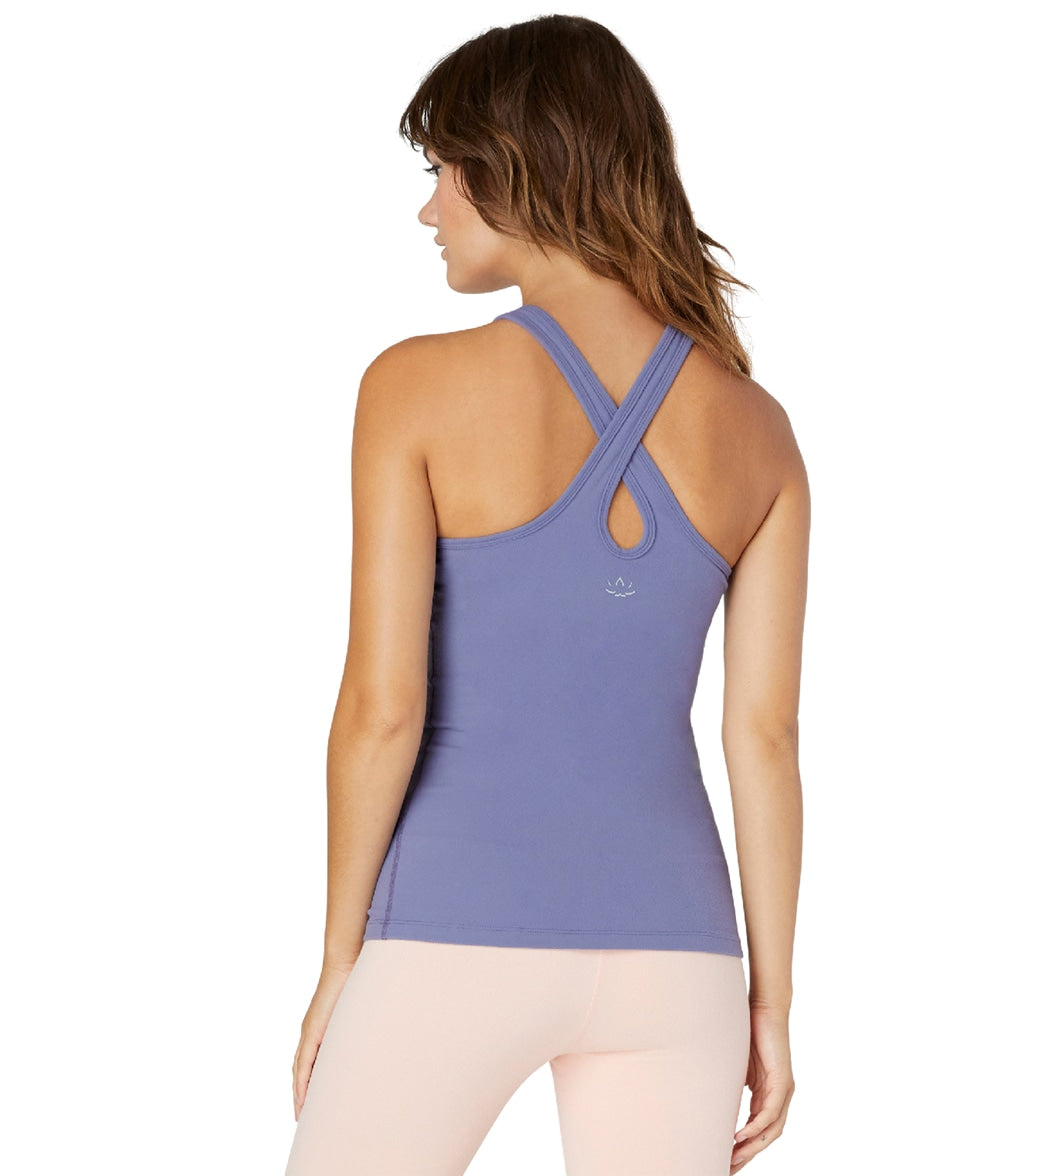 Pull-on comfortable support with this Under Lock and Keyhole Yoga Tank Top. A crisscross and keyhole back gives this second-skin tank top a stylish update. Features High-neck tank stop. High round neckline. Crisscross back with keyhole cutout. Self-lined shelf bra. Reflective Beyond Yoga logo at back center. Super soft, moisture-wicking material. Color and shape retaining. 4-way stretch material. Details Fabrics: 90% Supplex, 10% Lycra Colors: Black, Blue Style Features: High Neck, Crisscross, K